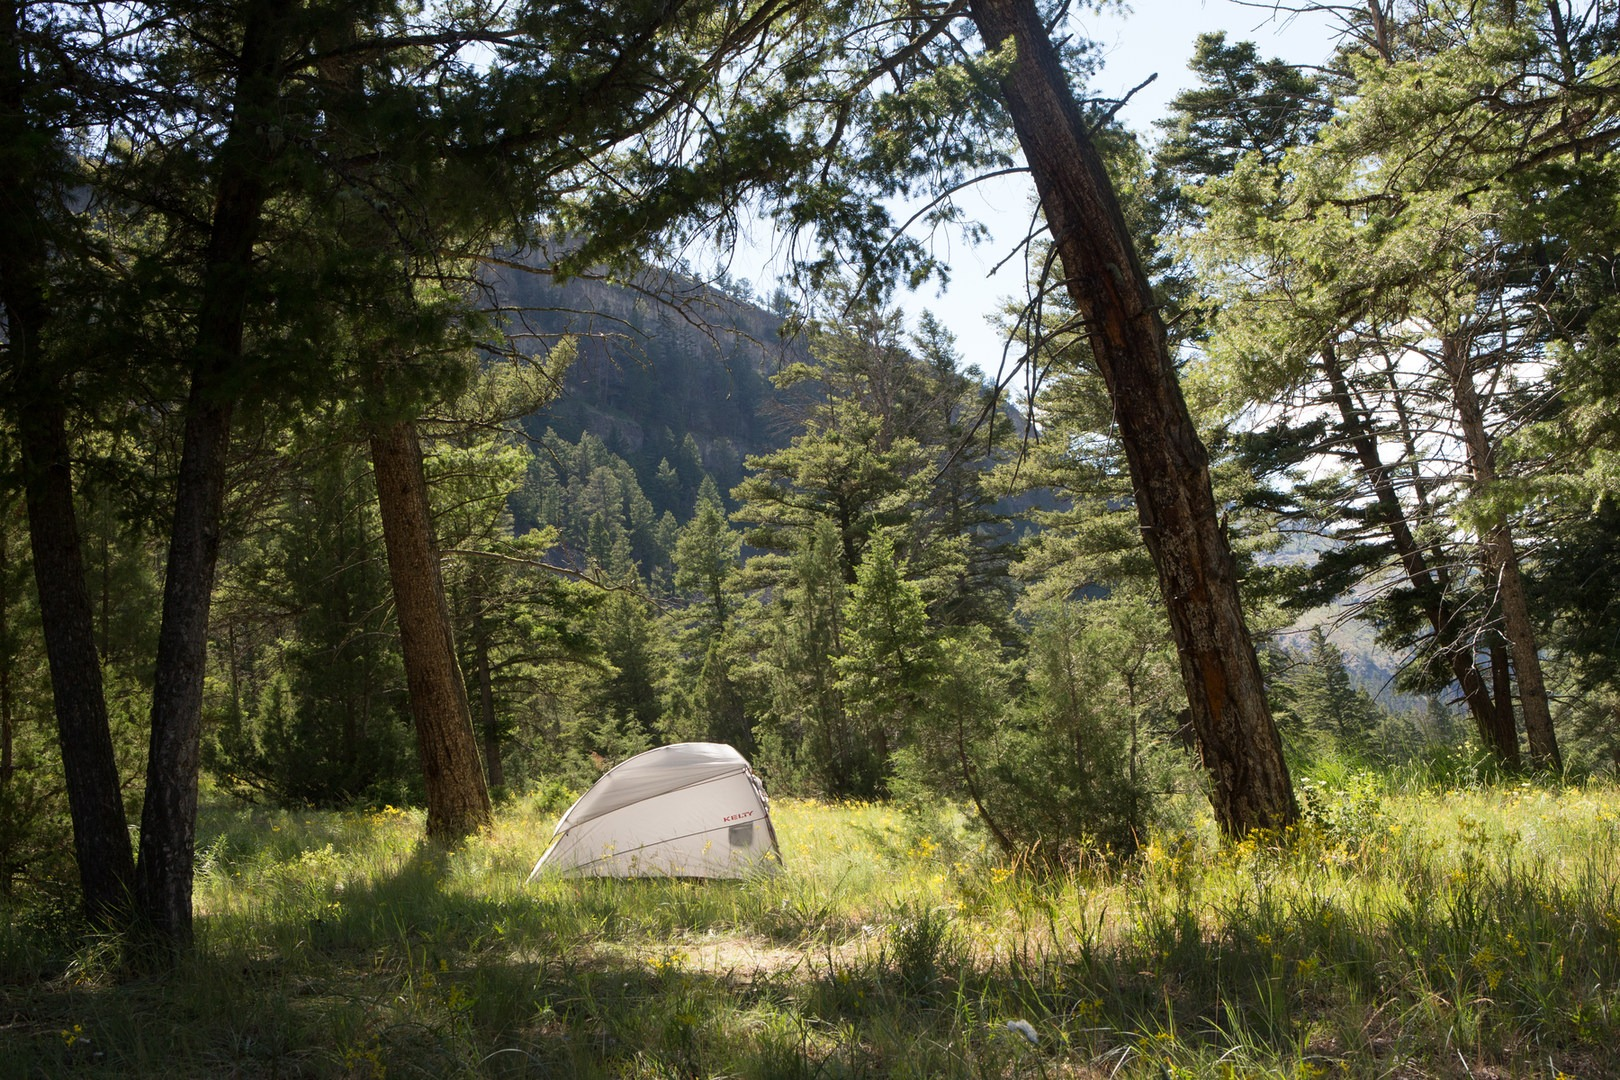 6 best backpacking trips in yellowstone national park - outdoor project